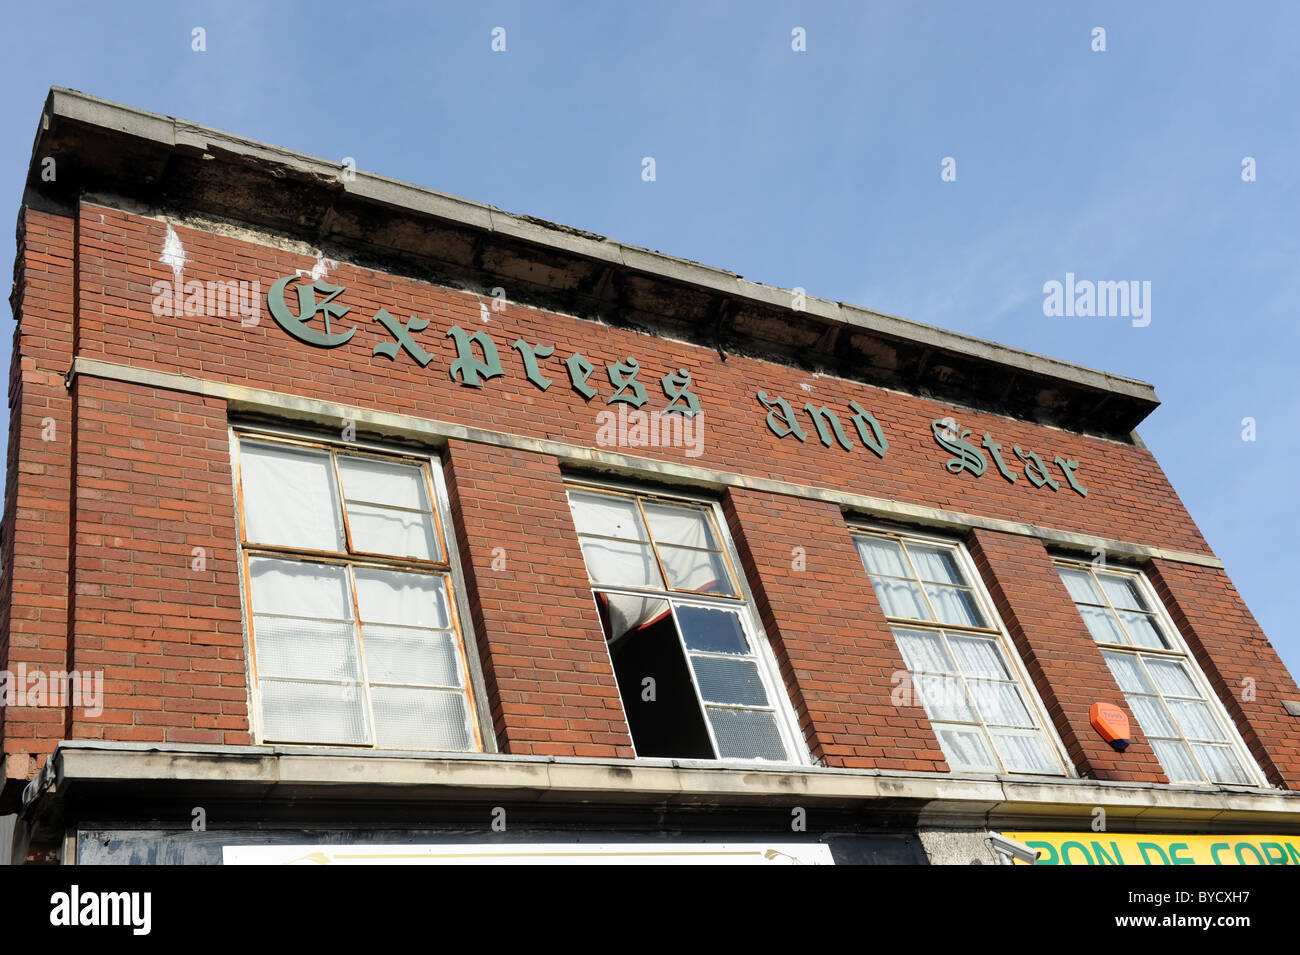 Bilston in the West Midlands England Uk former Express and Star newspaper offices - Stock Image